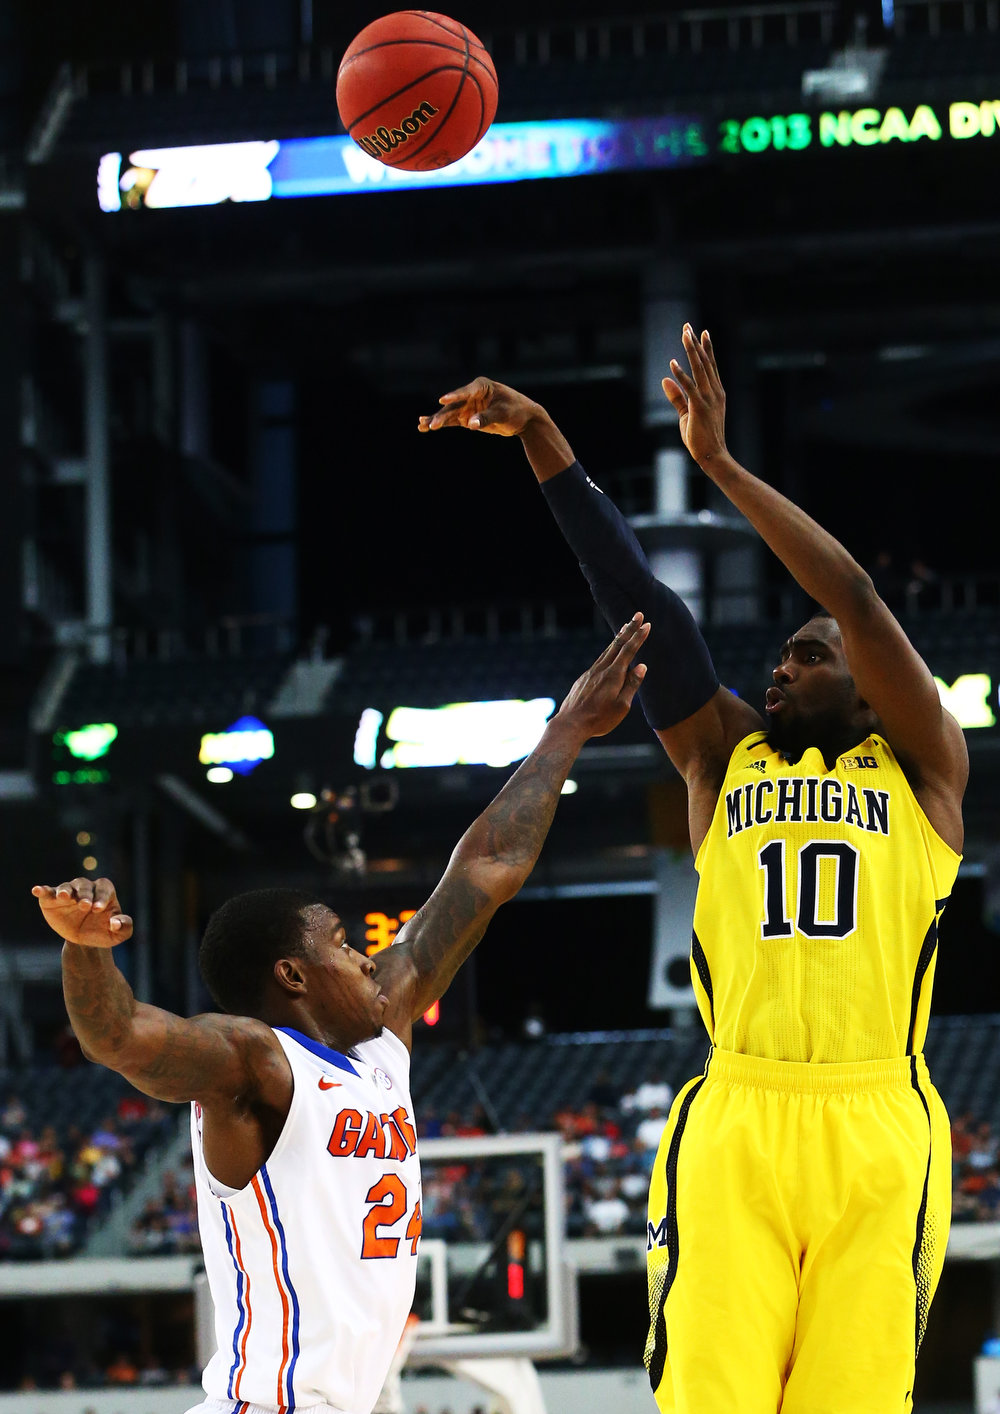 . Tim Hardaway Jr. #10 of the Michigan Wolverines goes up for a three pointer over Casey Prather #24 of the Florida Gators in the first half during the South Regional Round Final of the 2013 NCAA Men\'s Basketball Tournament at Dallas Cowboys Stadium on March 31, 2013 in Arlington, Texas.  (Photo by Ronald Martinez/Getty Images)